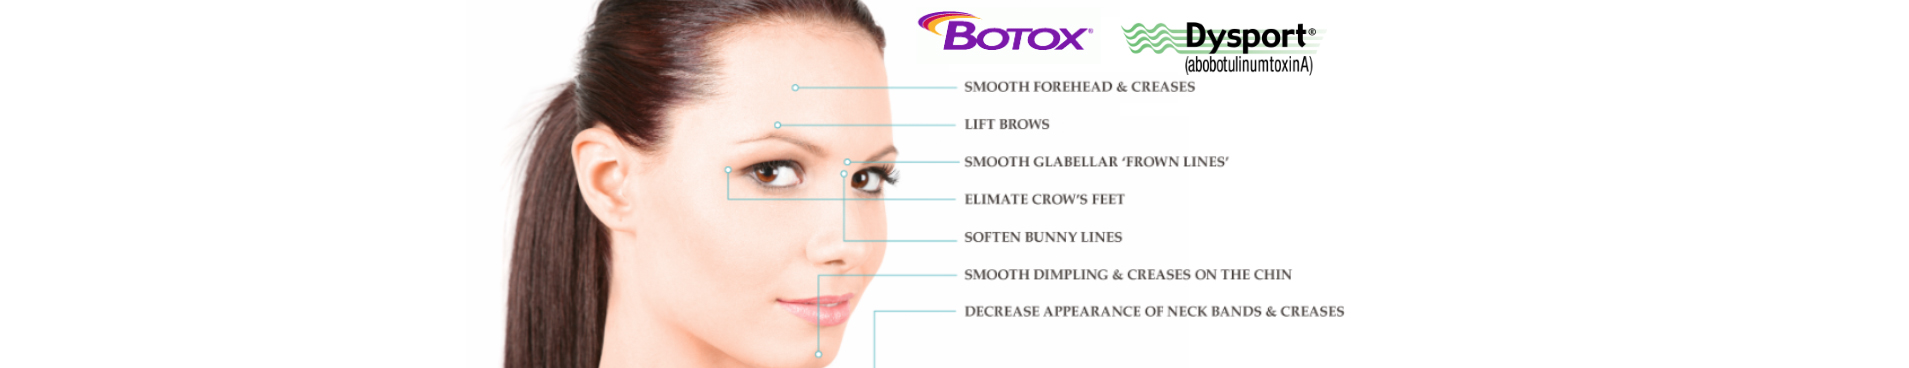 botox and dysport